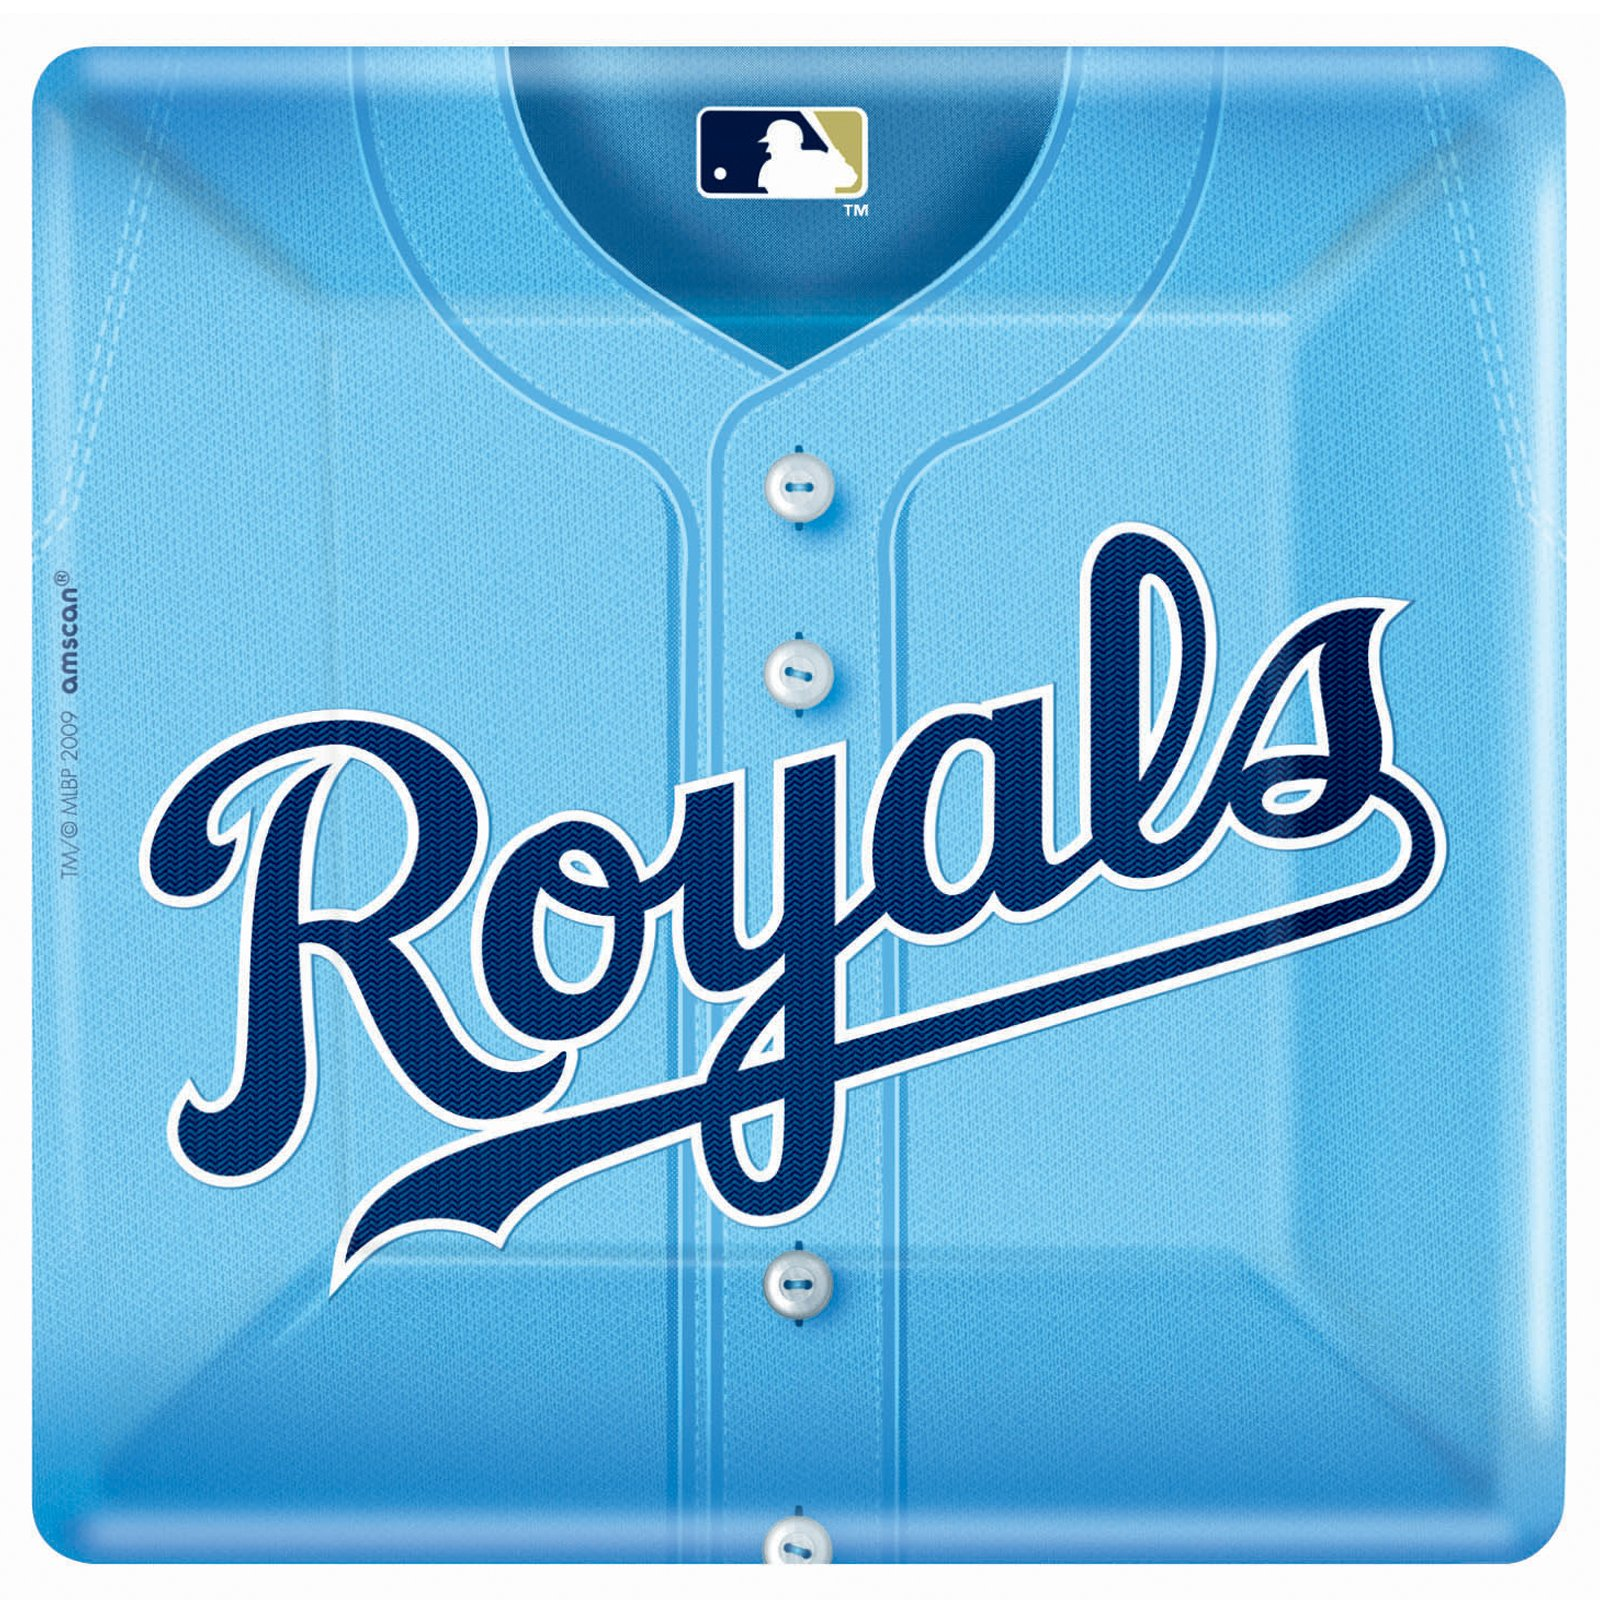 Kansas City Royals Baseball - Square Banquet Dinner Plates (18 c